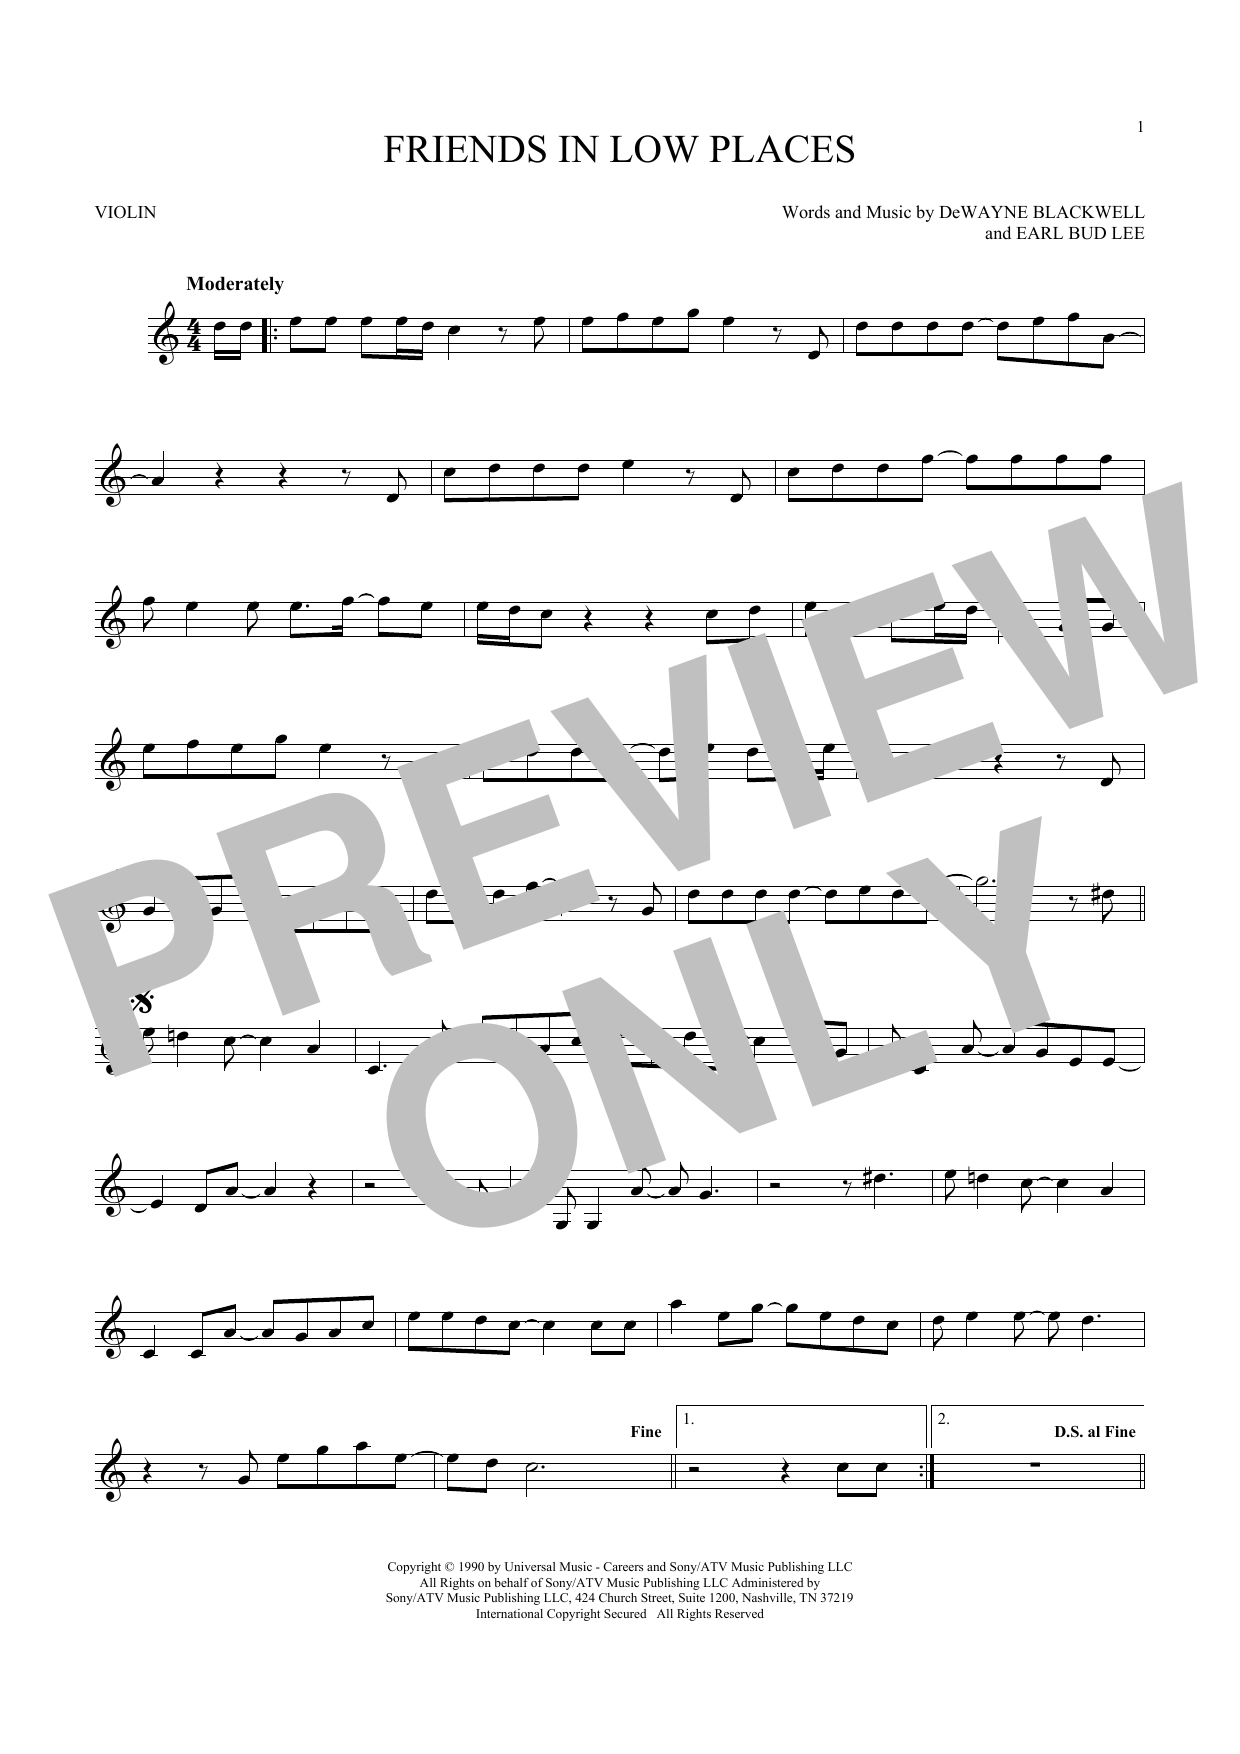 Garth Brooks Friends In Low Places Sheet Music Notes Chords